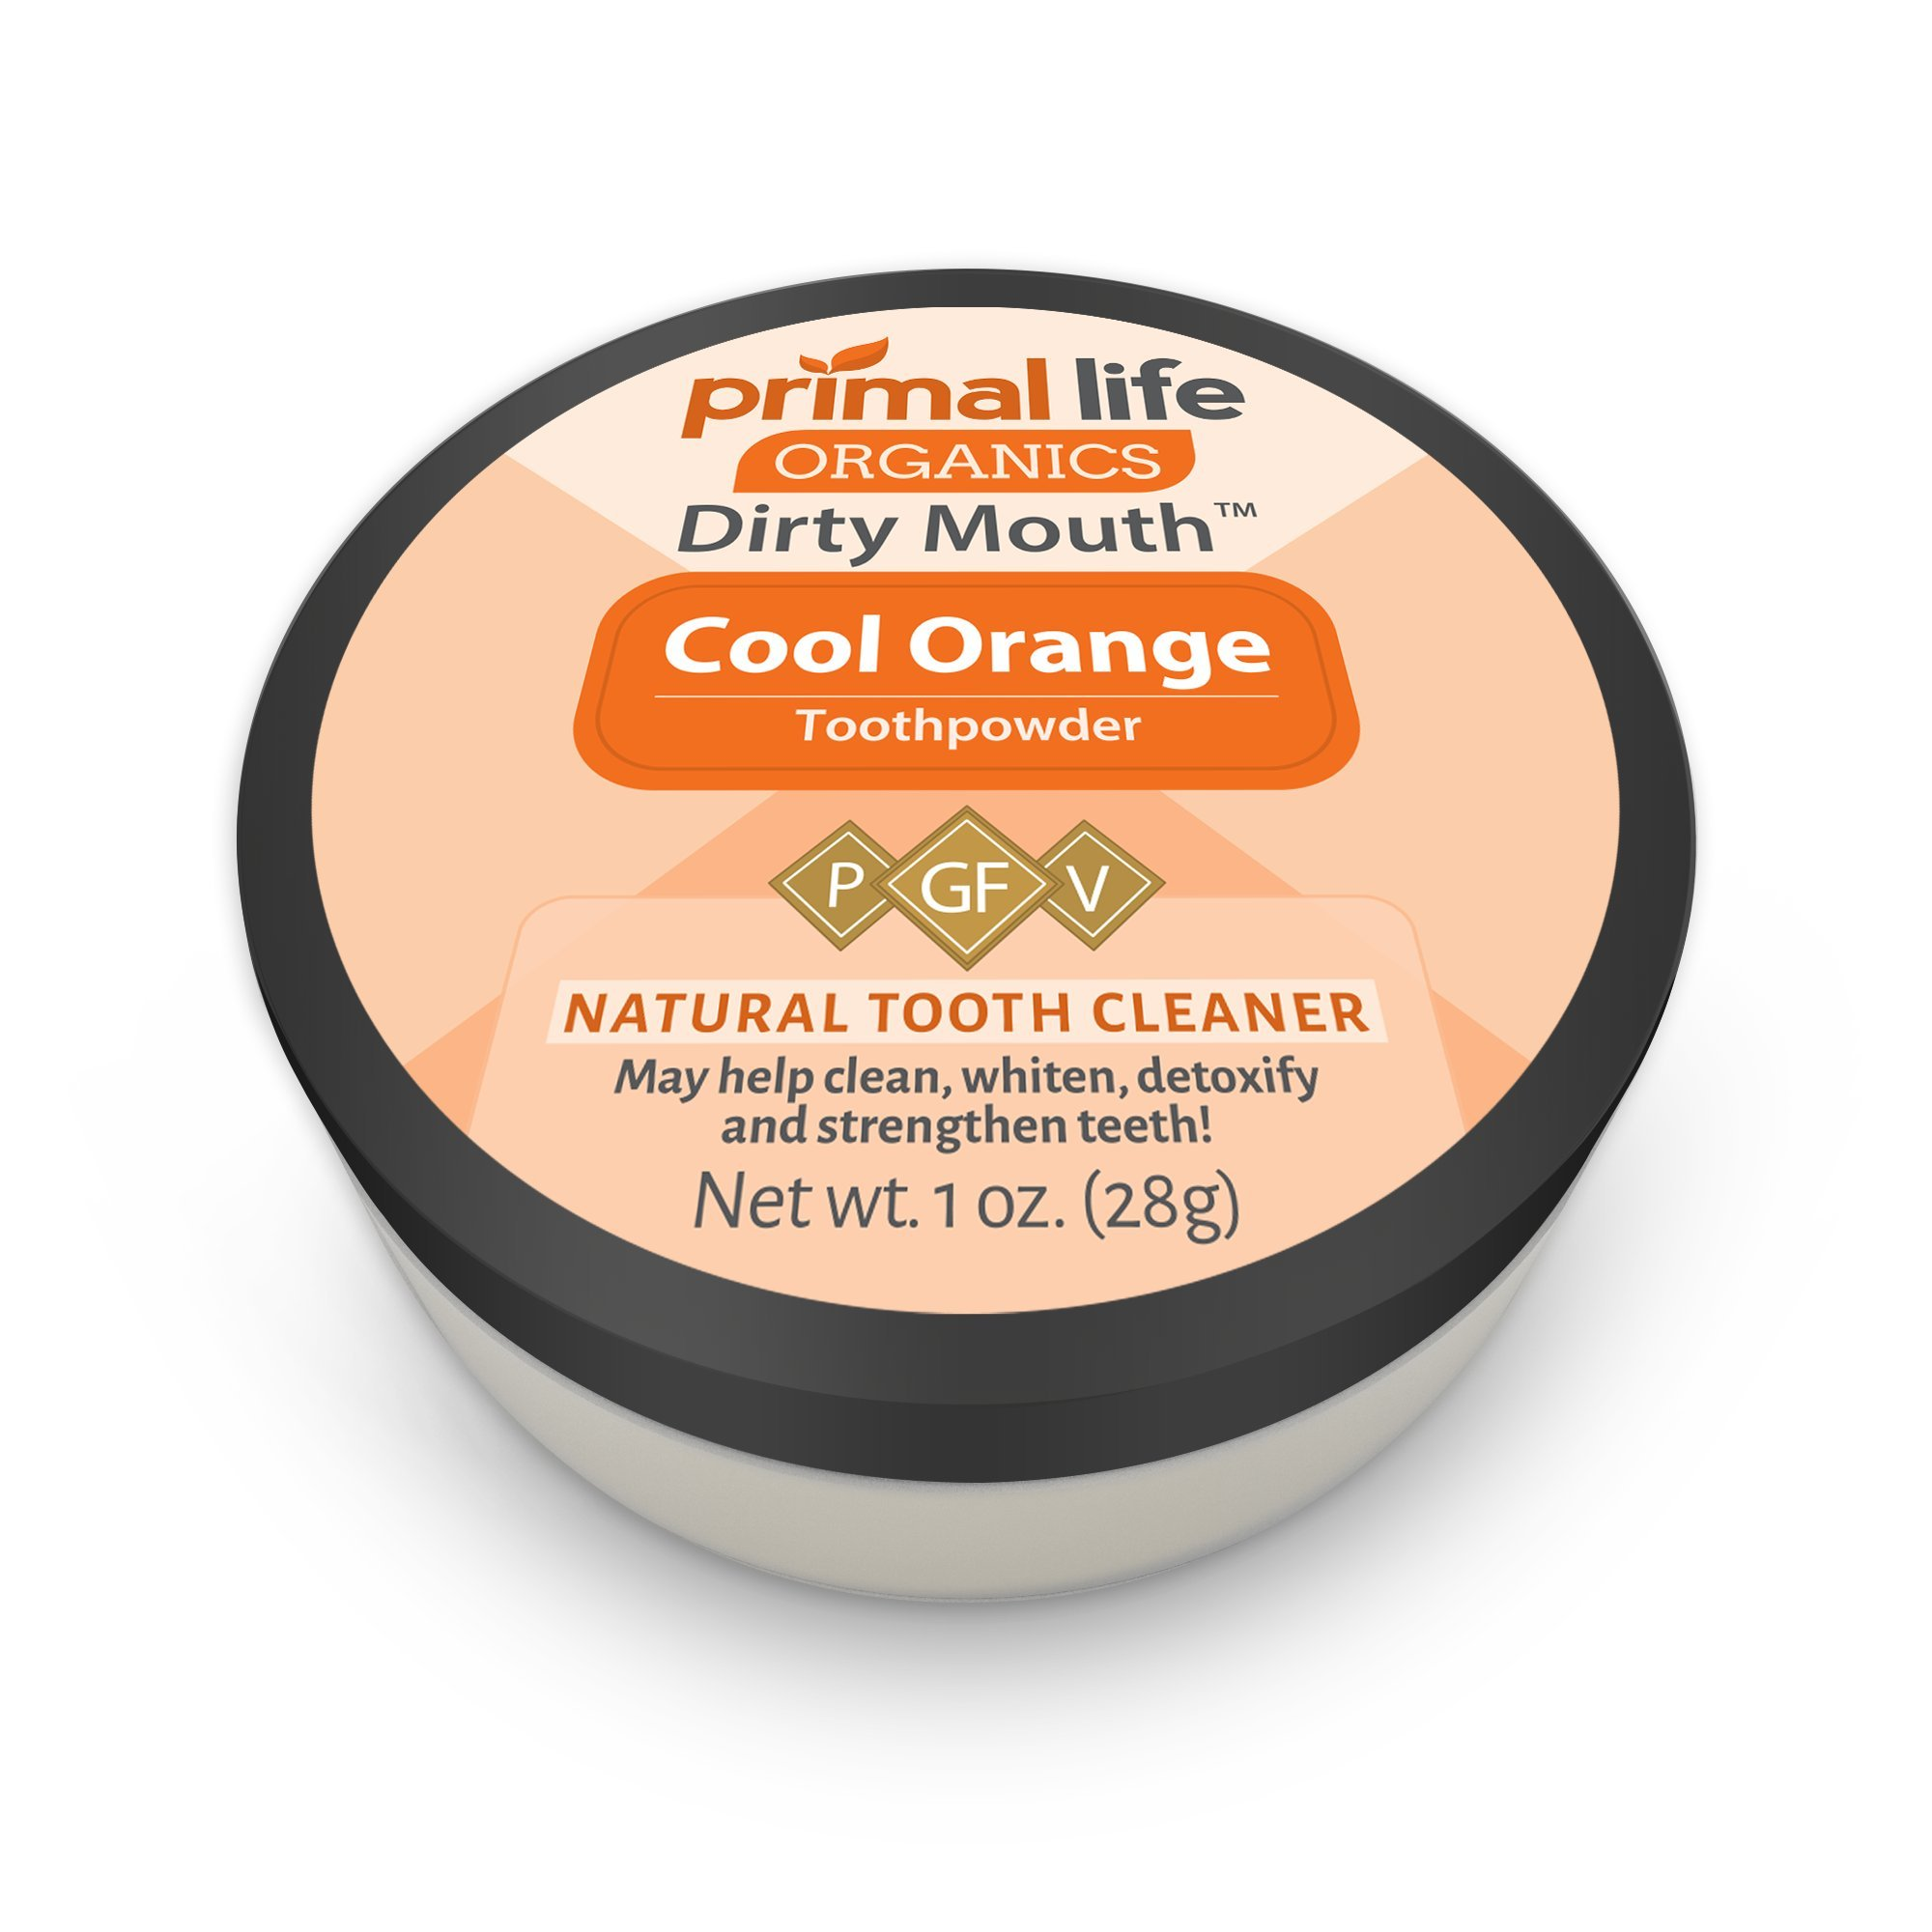 Dirty Mouth Organic Toothpowder #1 BEST RATED All Natural Dental Cleanser- Gently Polishes, Detoxifies, Re-Mineralizes, Strengthens Teeth - Cool Orange (1 oz = 3mo Supply) - Primal Life Organics